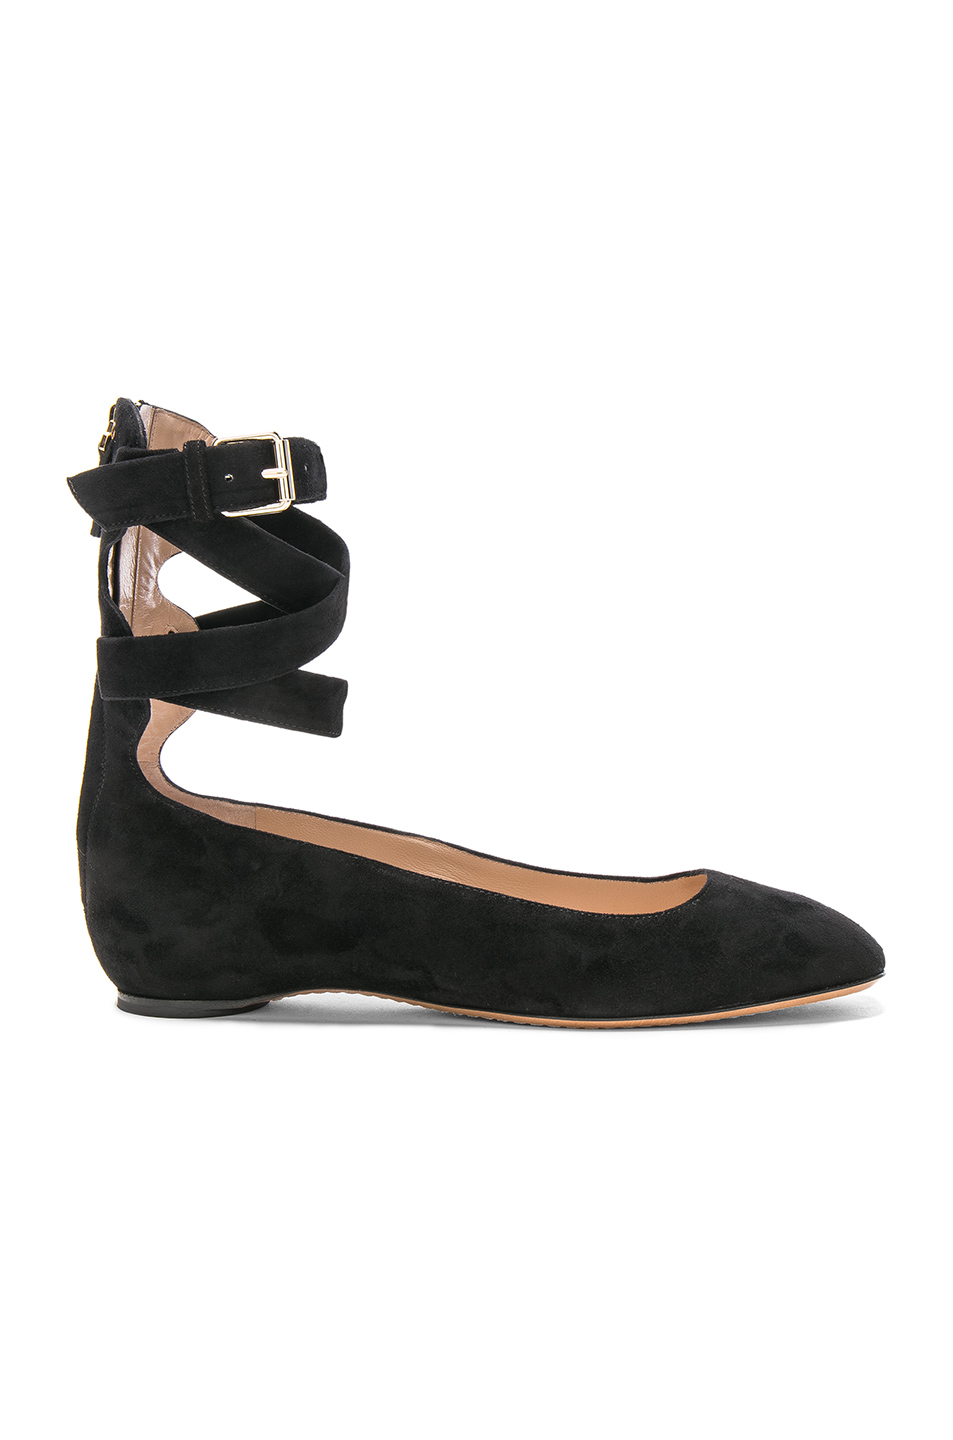 Valentino Suede Ankle Strap Flats in Black